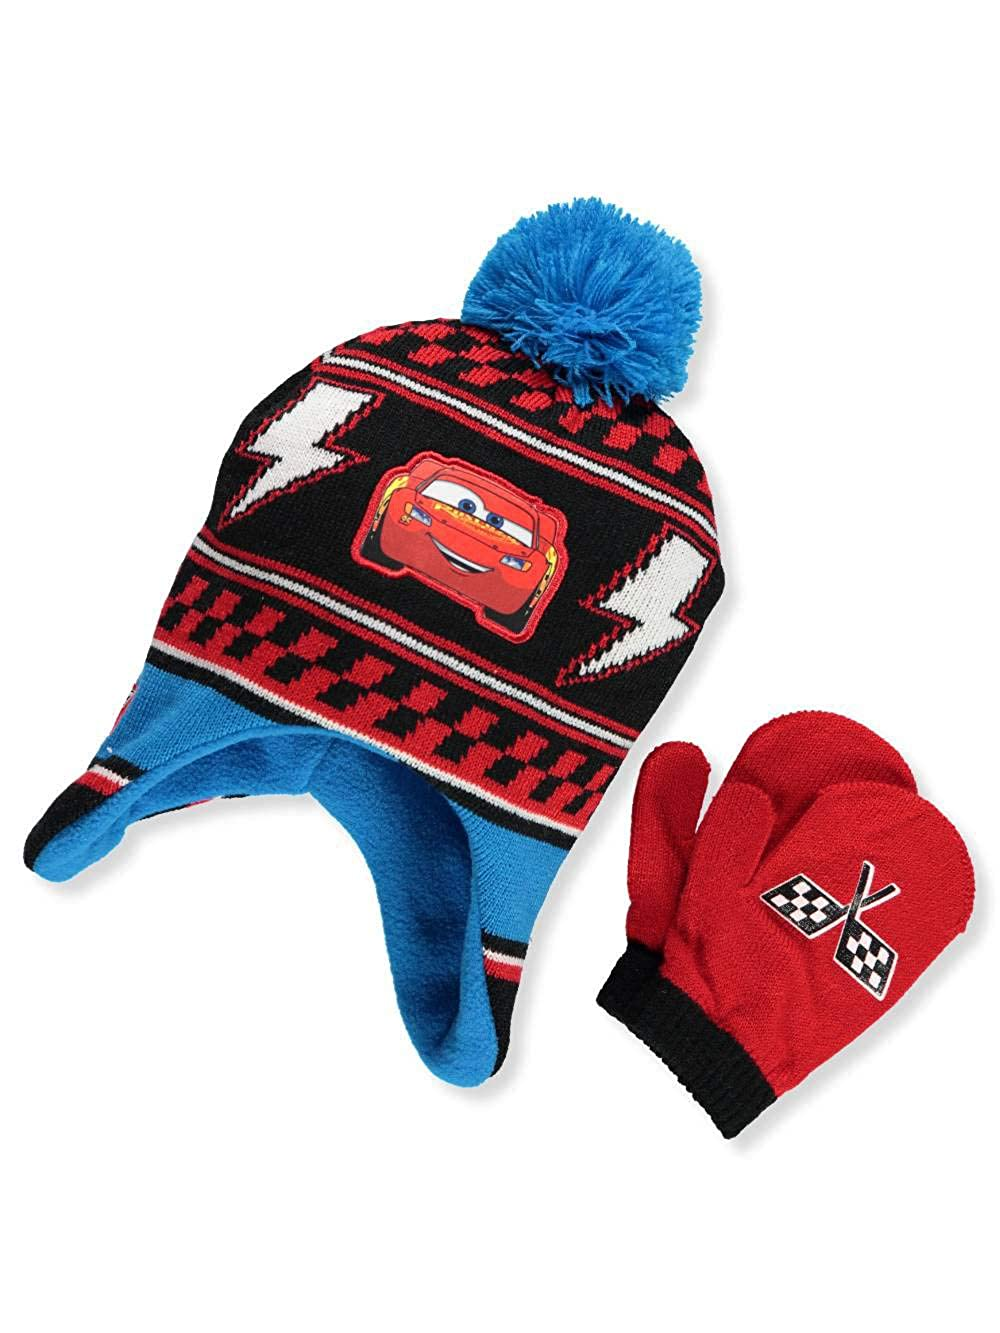 Disney Cars 3 Boys' Beanie & Mittens Set one size